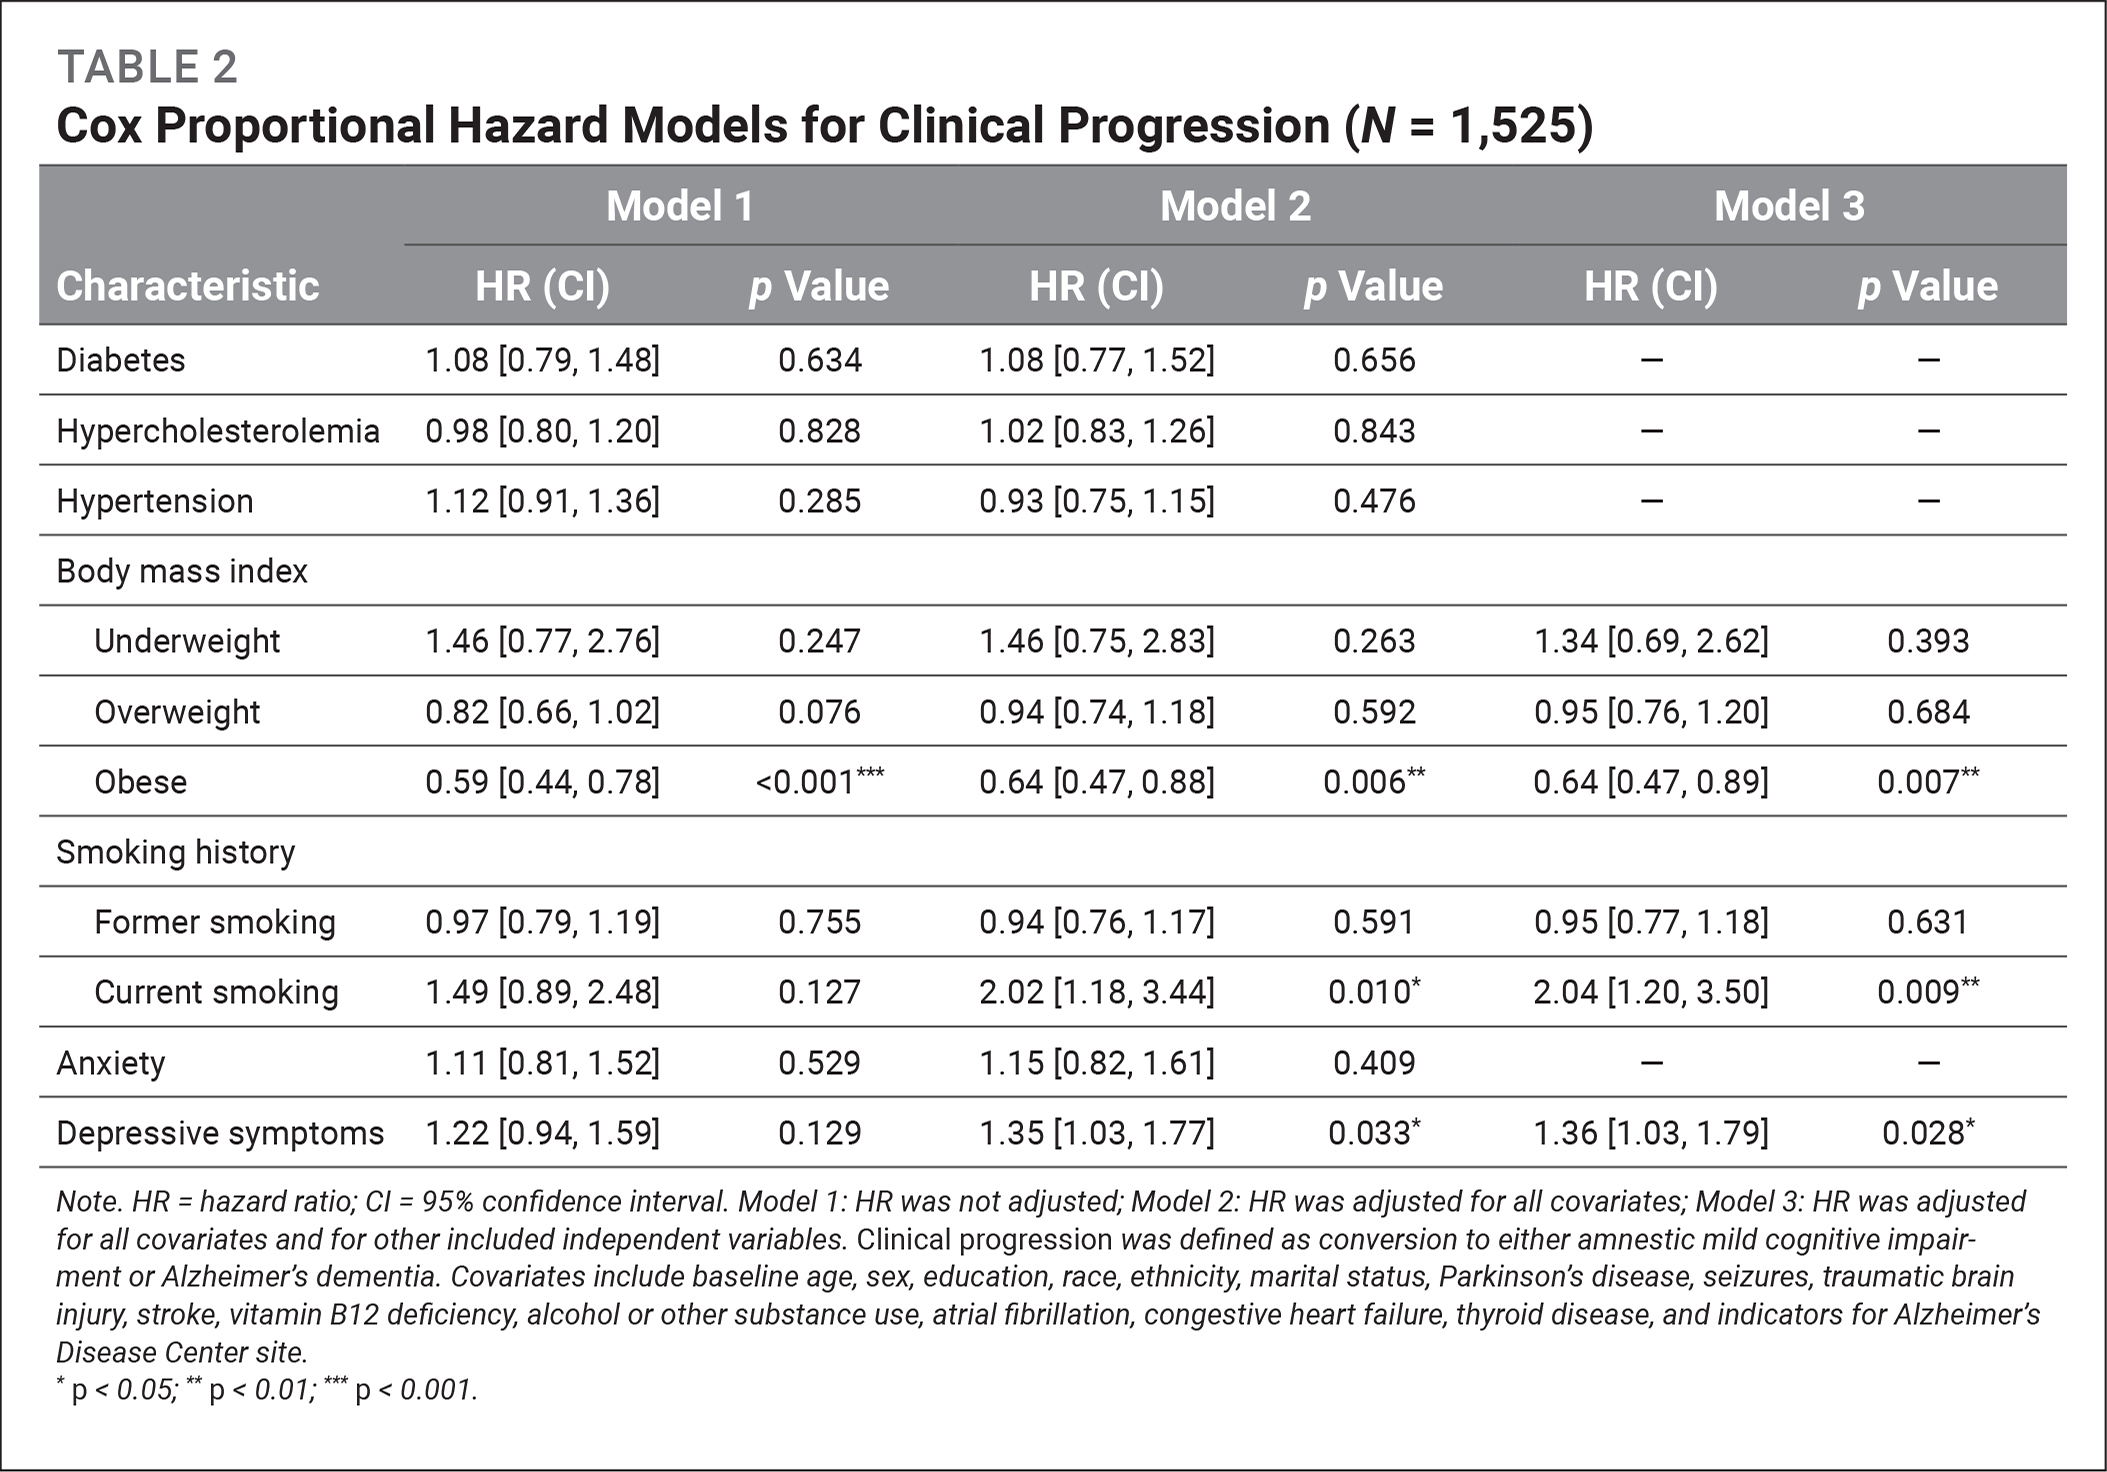 Cox Proportional Hazard Models for Clinical Progression (N = 1,525)